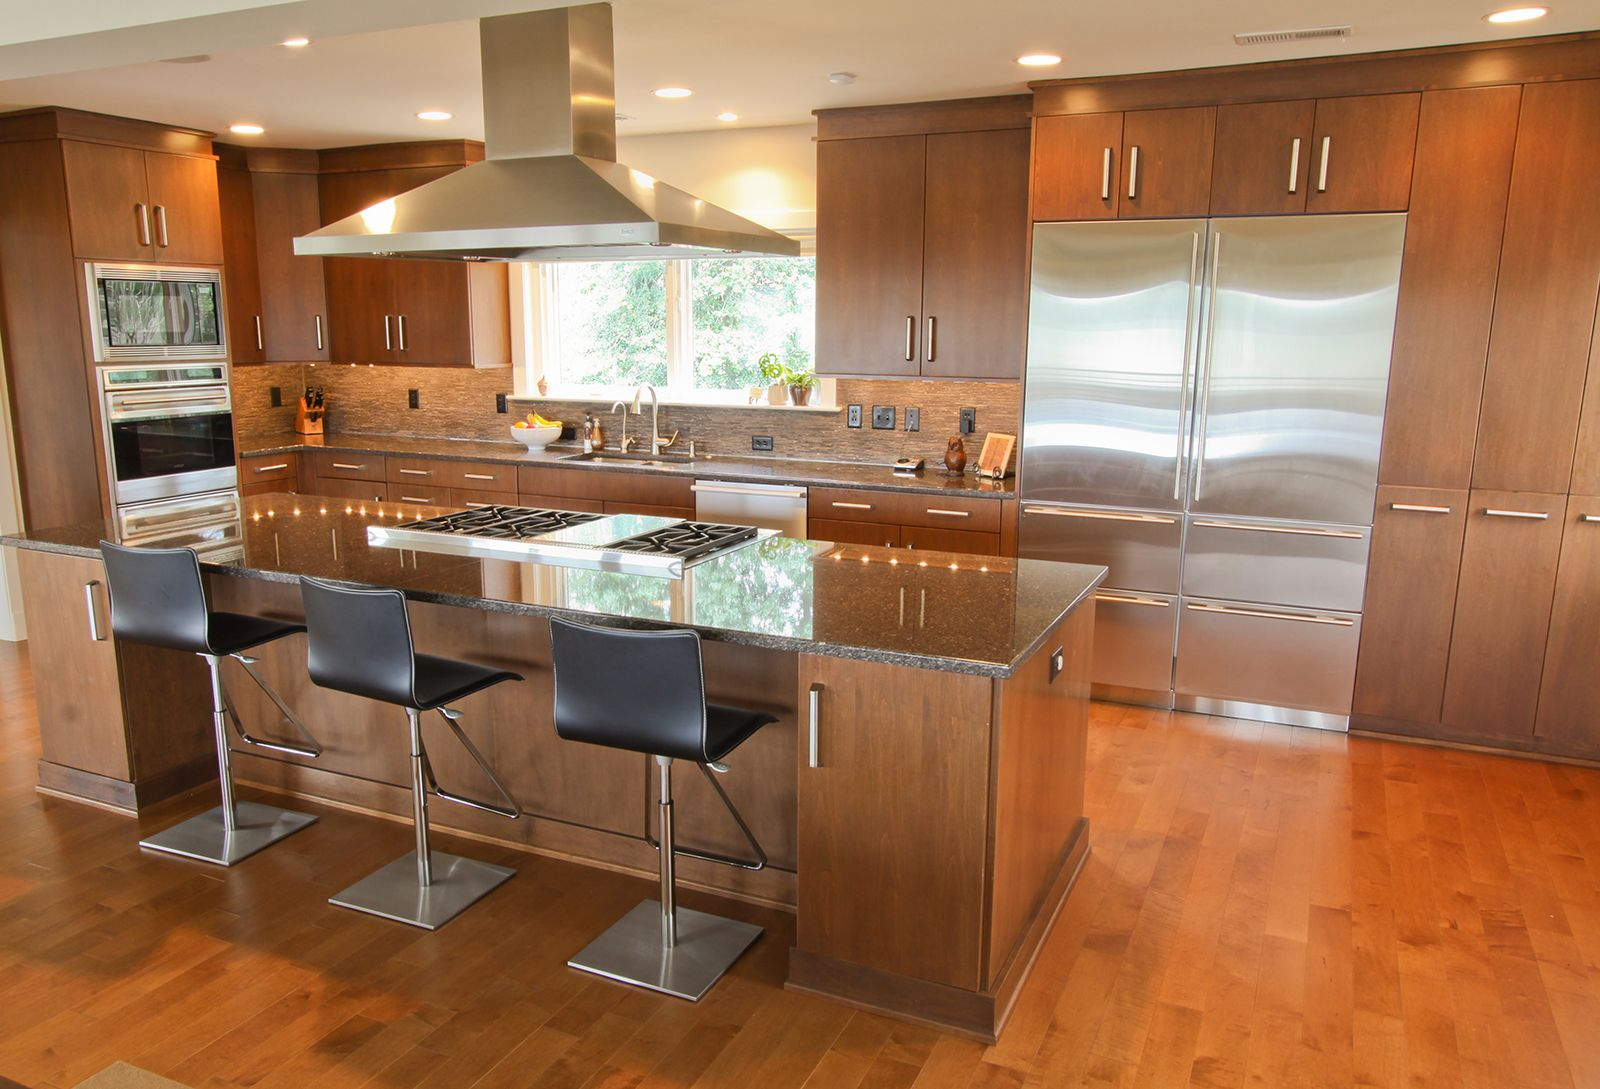 Eat-In Kitchen - Richmond, VA | Classic kitchens, Kitchen ...